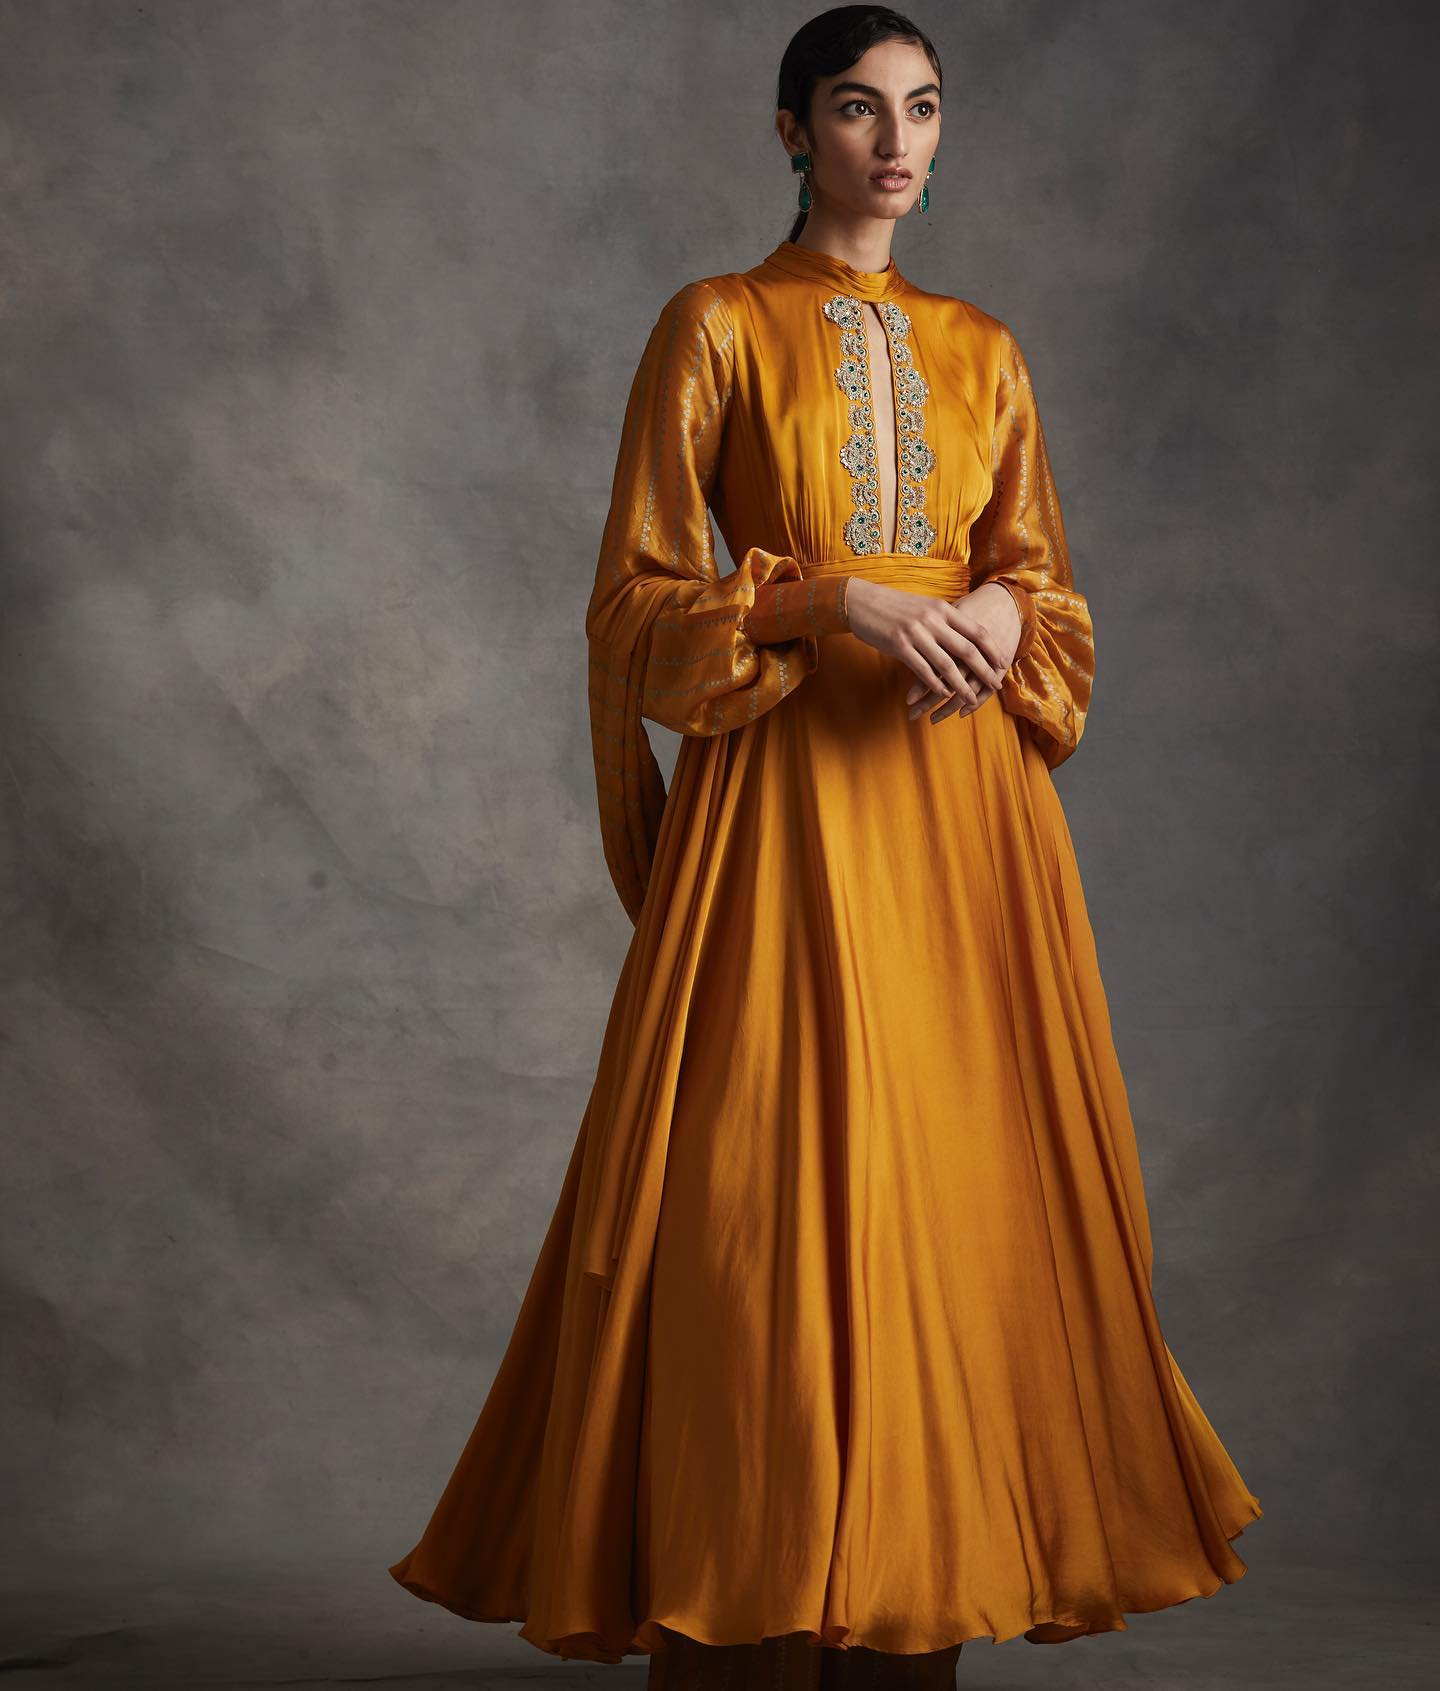 SUMMER ROMANCE . FESTIVE 2021 . PART 2  LOOK 6 - Haldi anarkali with nukta print exaggerated sleeves & embroidered yoke & nukta print palazzos & dupatta. . .  . To place orders or for assistance please Call/WhatsApp on +91 9821497535. . 2021-02-23